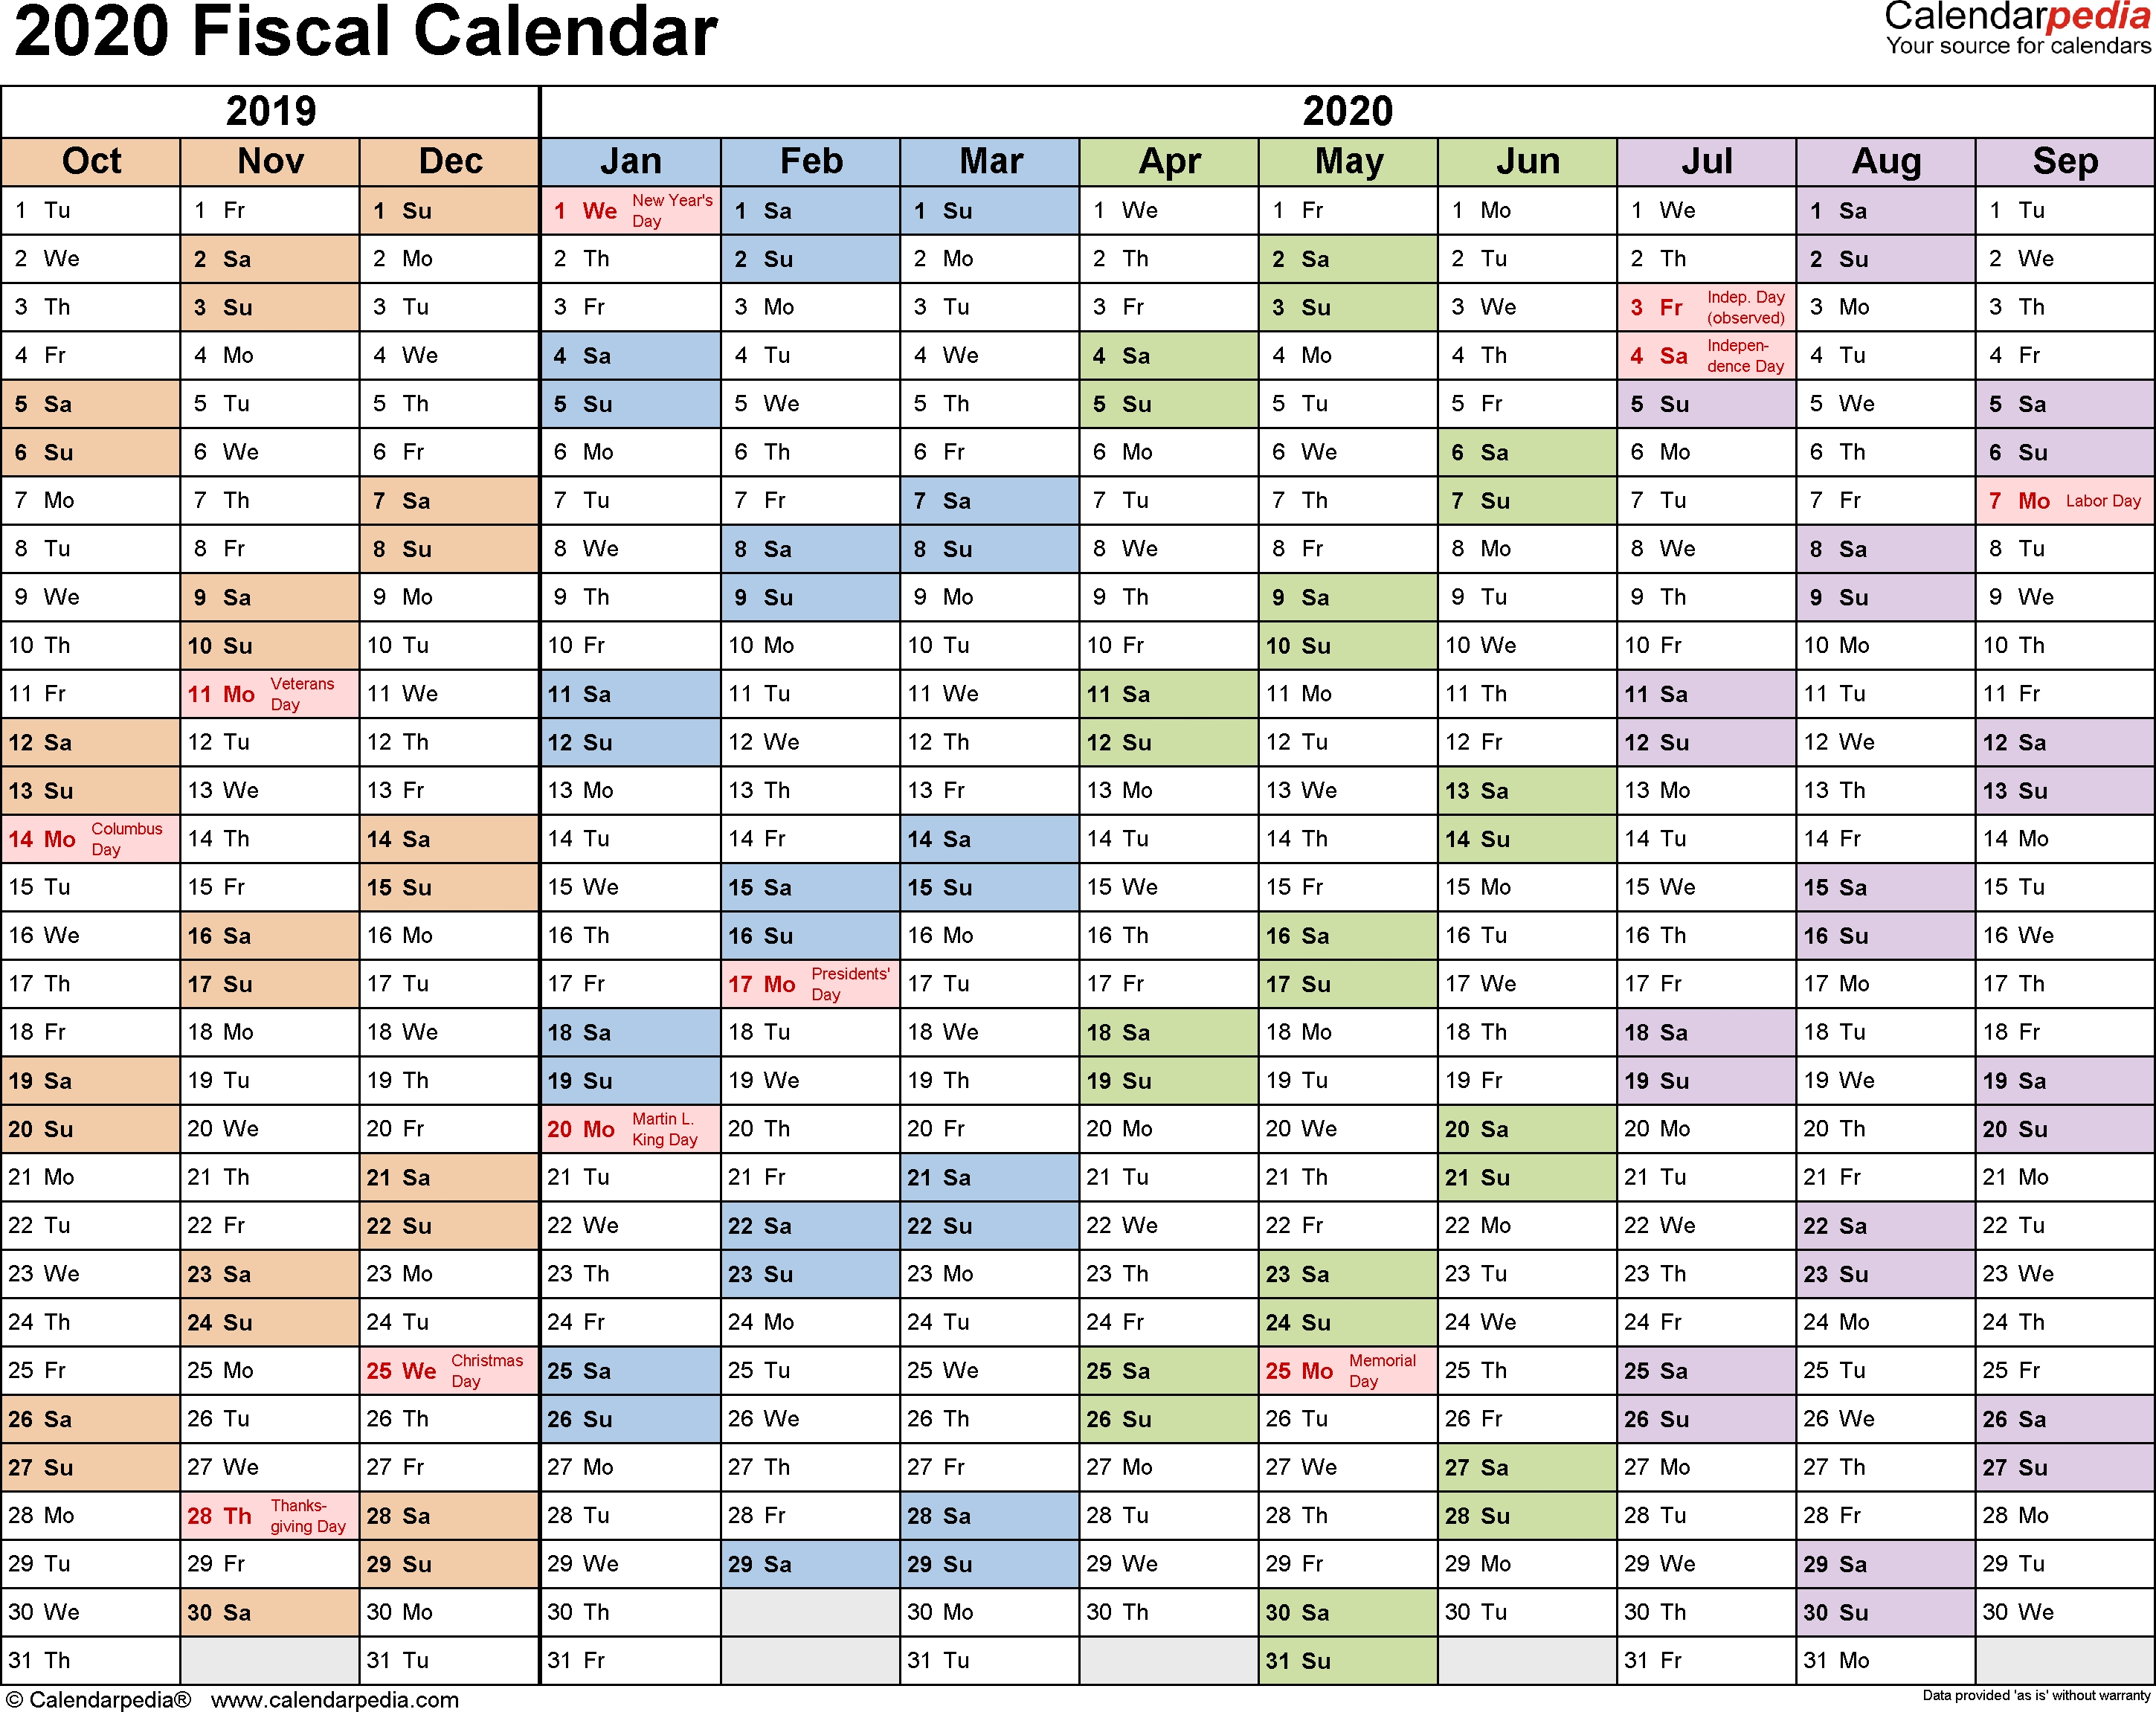 Fiscal Calendars 2020 As Free Printable Excel Templates within 2019-2020 Fiscal Calendar 4 4 5